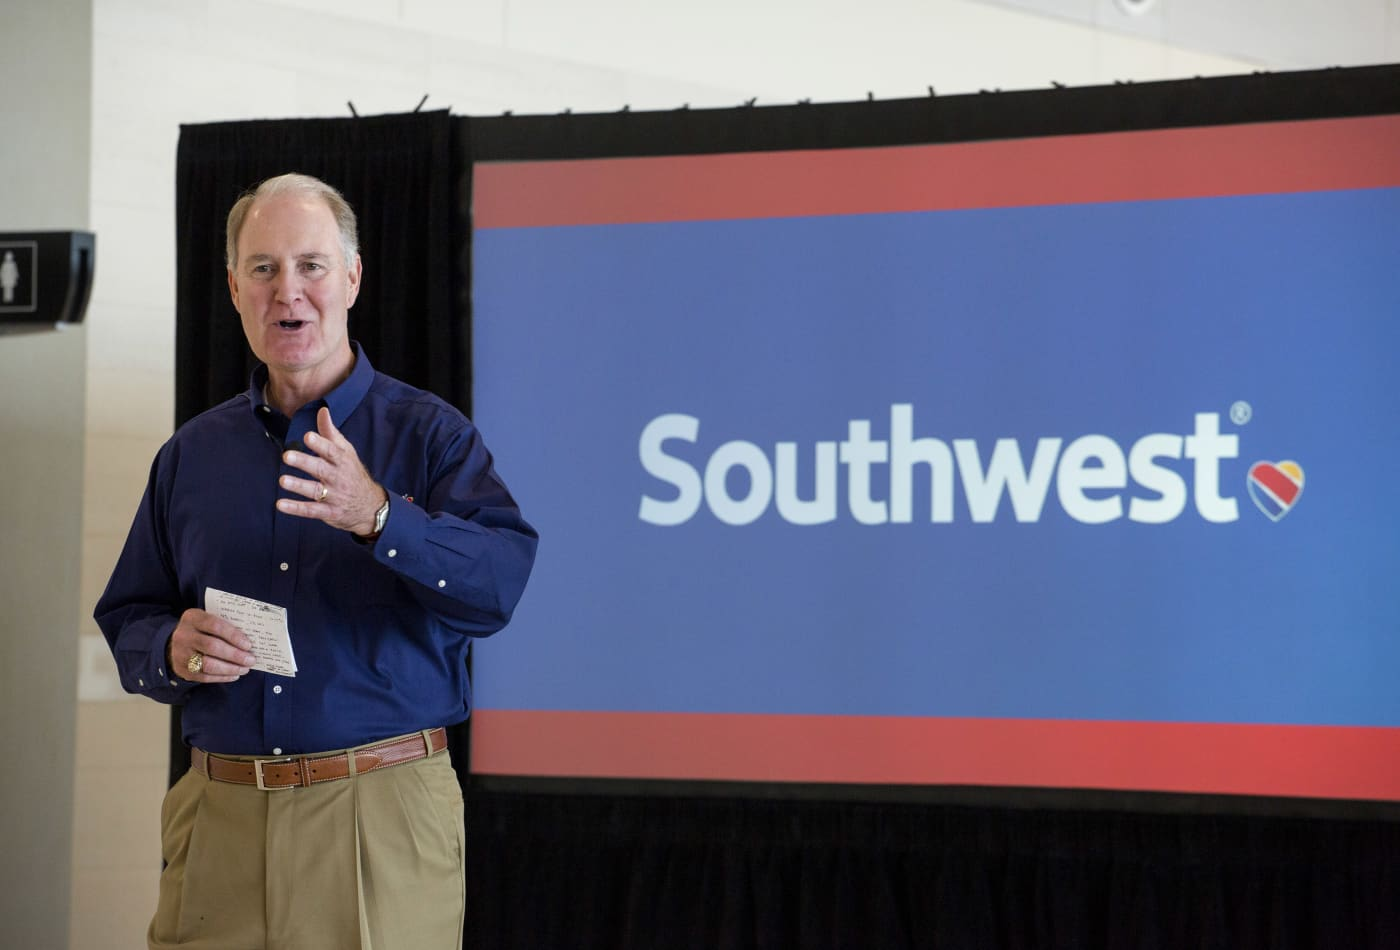 Southwest Airlines CEO Kelly stepping down in 2022, will be replaced by company veteran